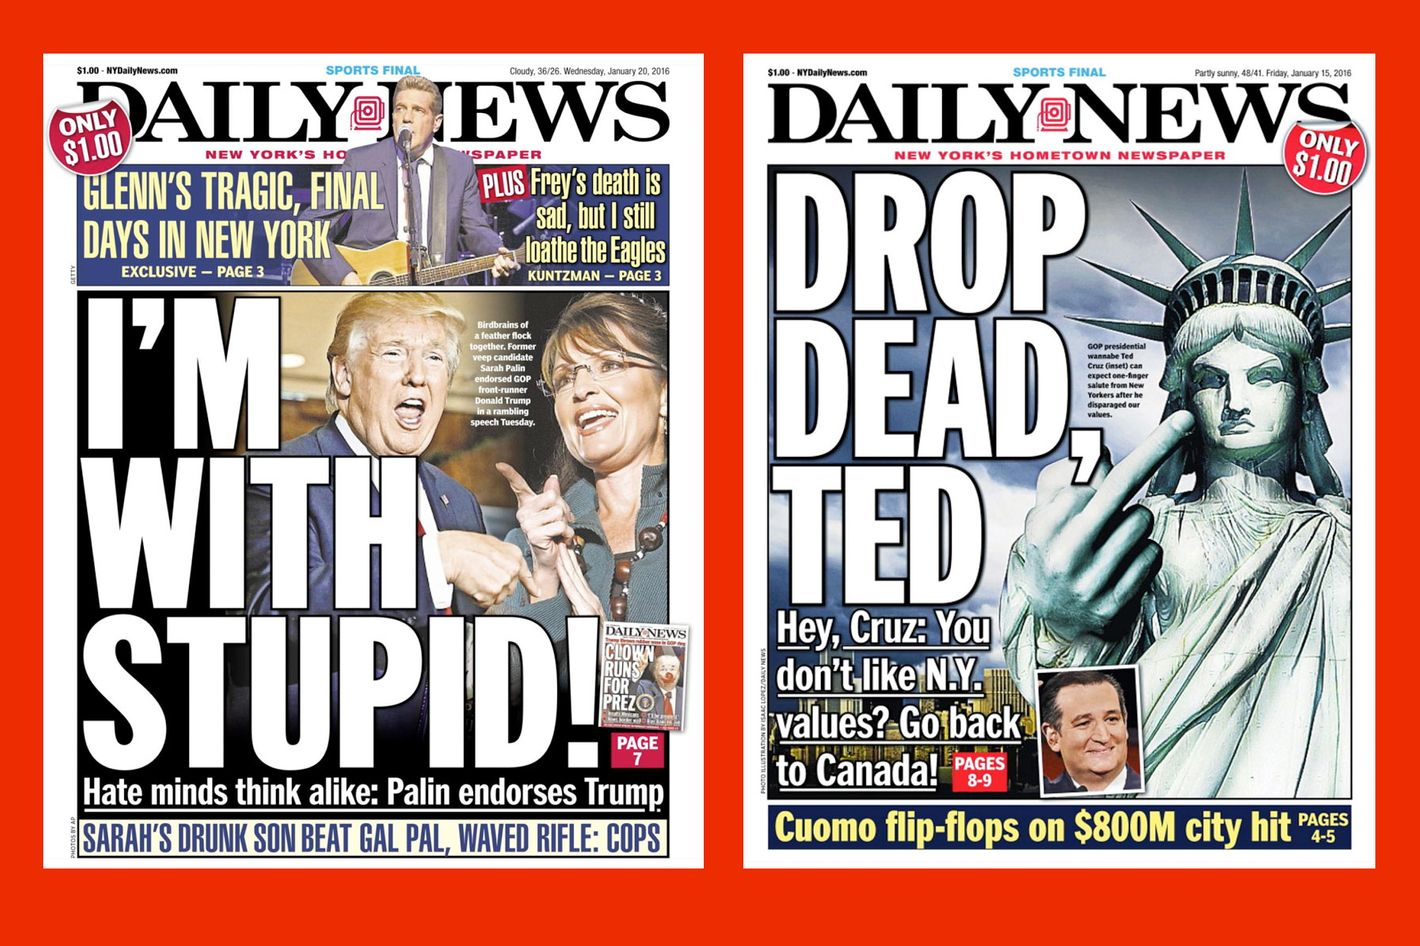 The New York Daily News, officially titled Daily News, is an American newspaper based in New York cemedomino.ml of May , it was the ninth-most widely circulated daily newspaper in the United States. It was founded in , and was the first U.S. daily printed in tabloid cemedomino.ml reached its peak circulation in , at million copies a day.